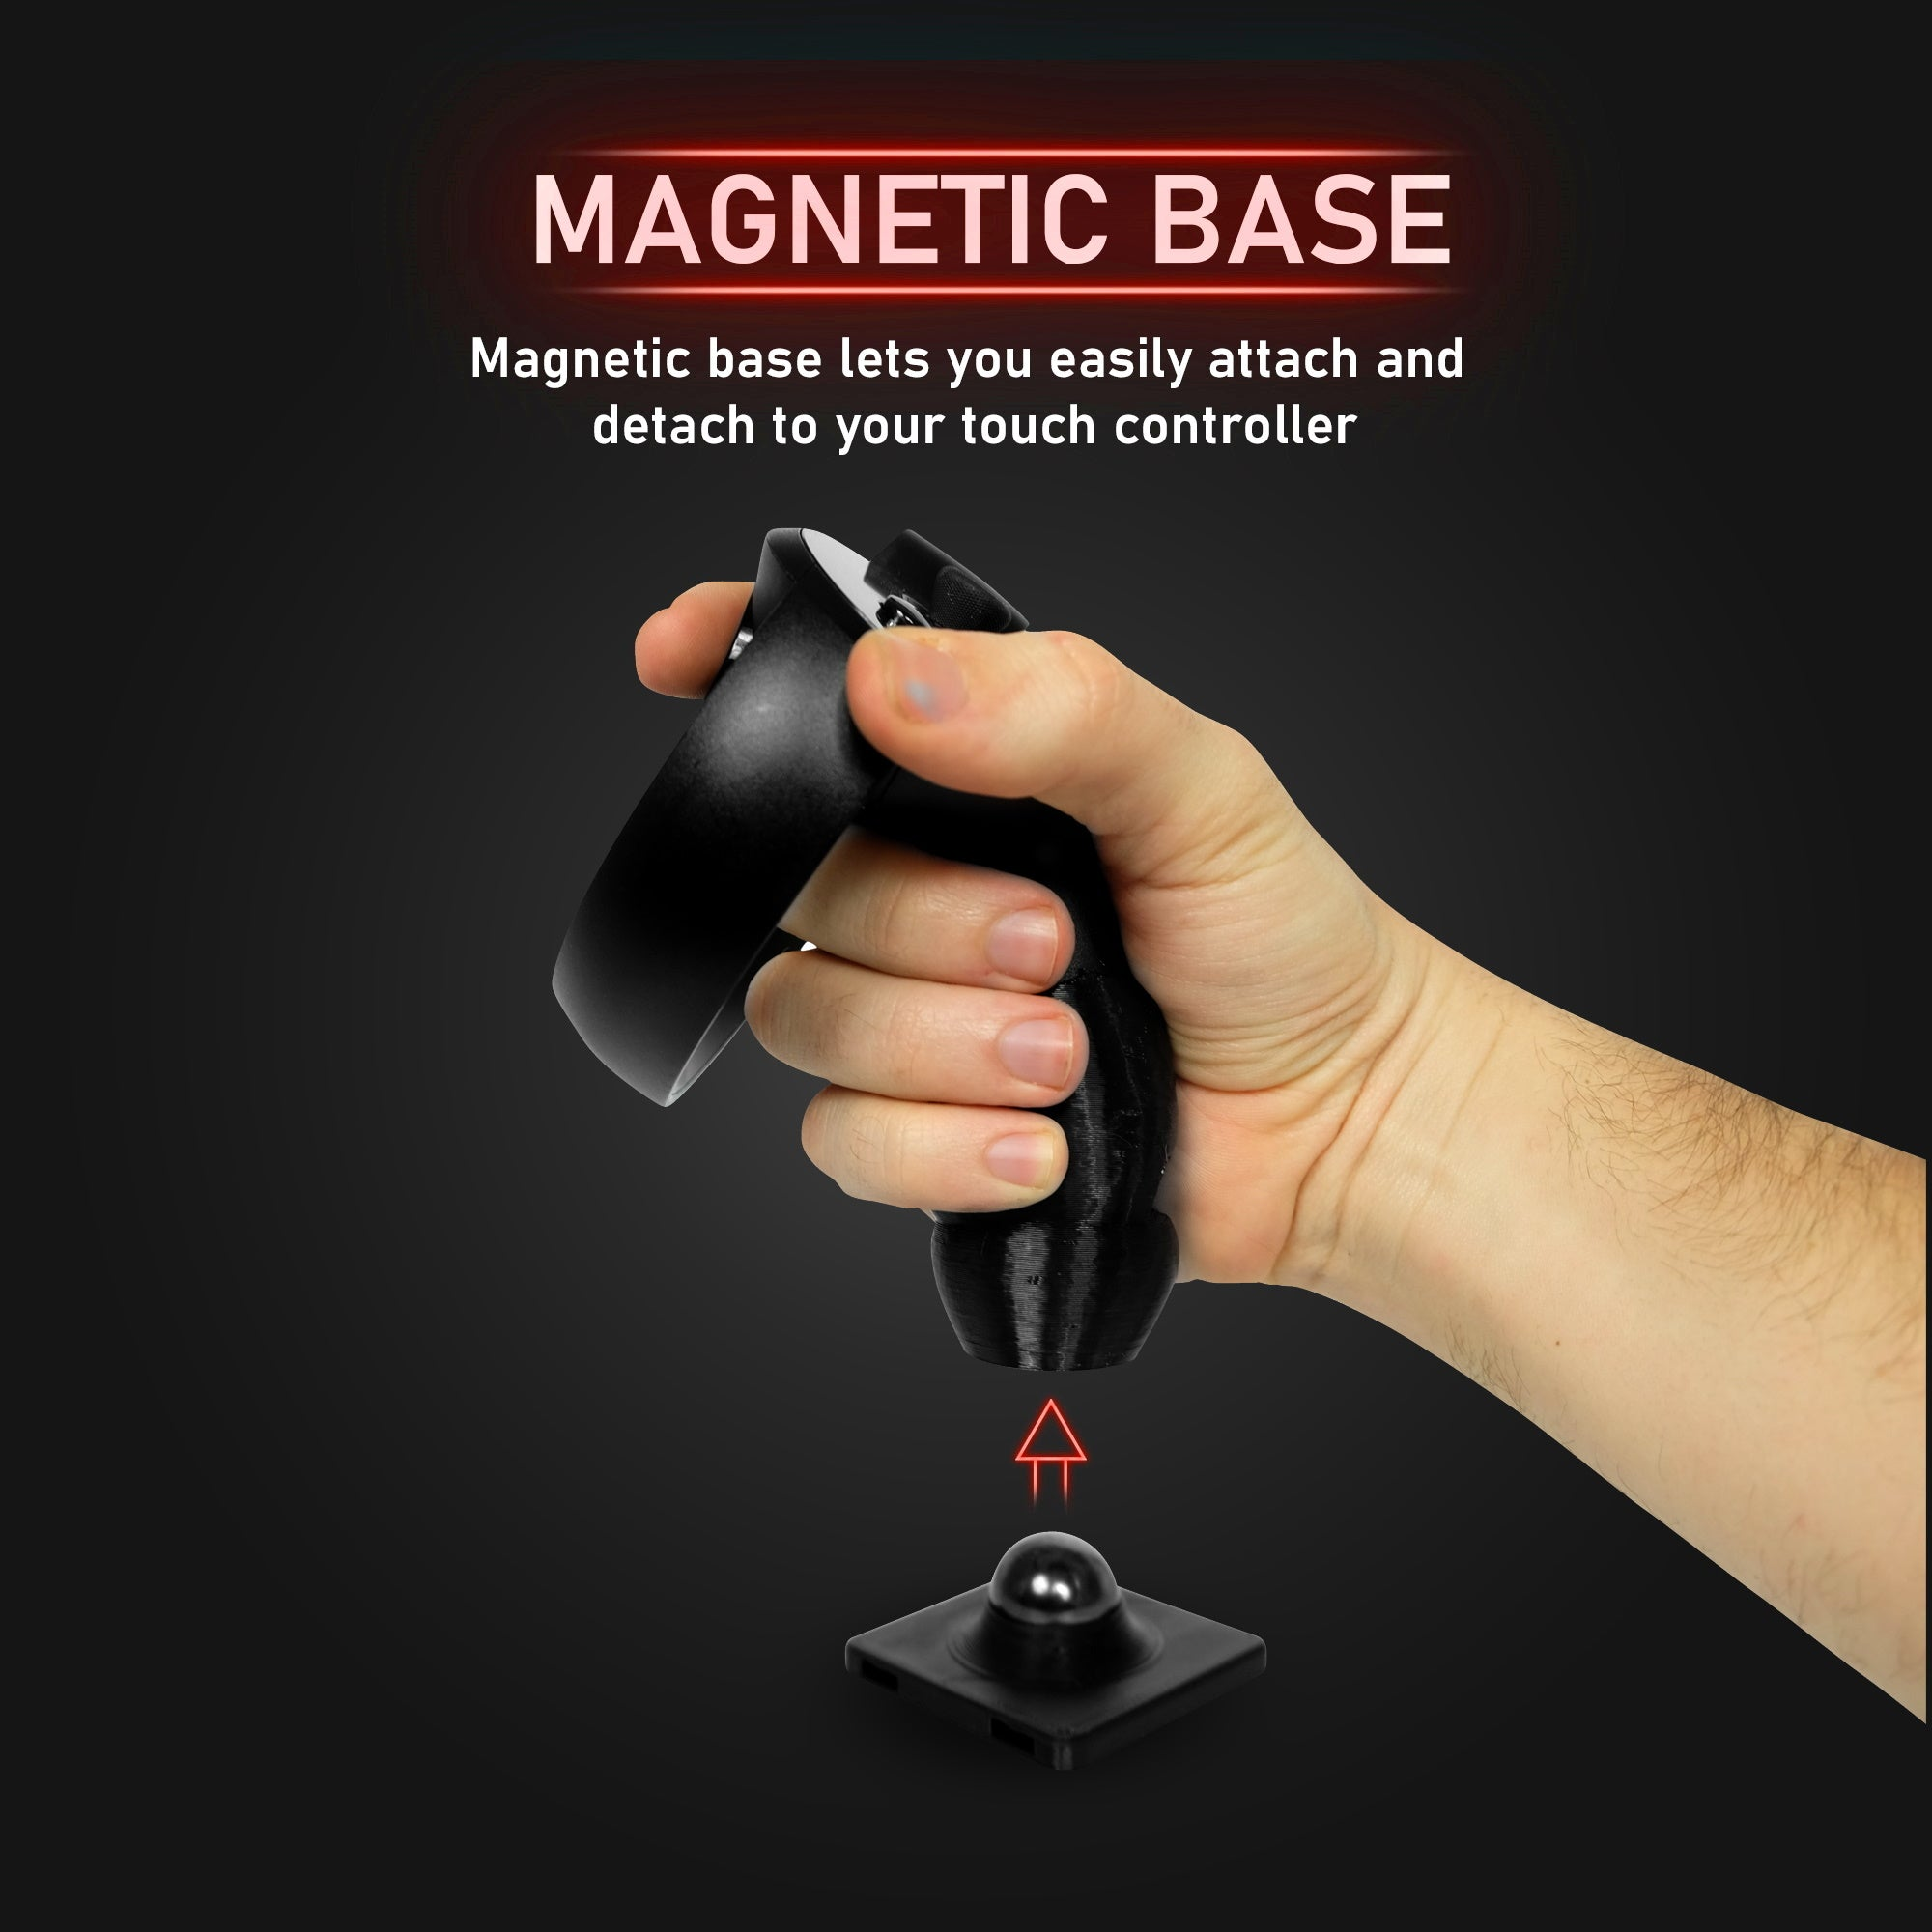 Advanced Flight Stick - Magnetic HOTAS Joystick Adapter for The Oculus Rift CV1